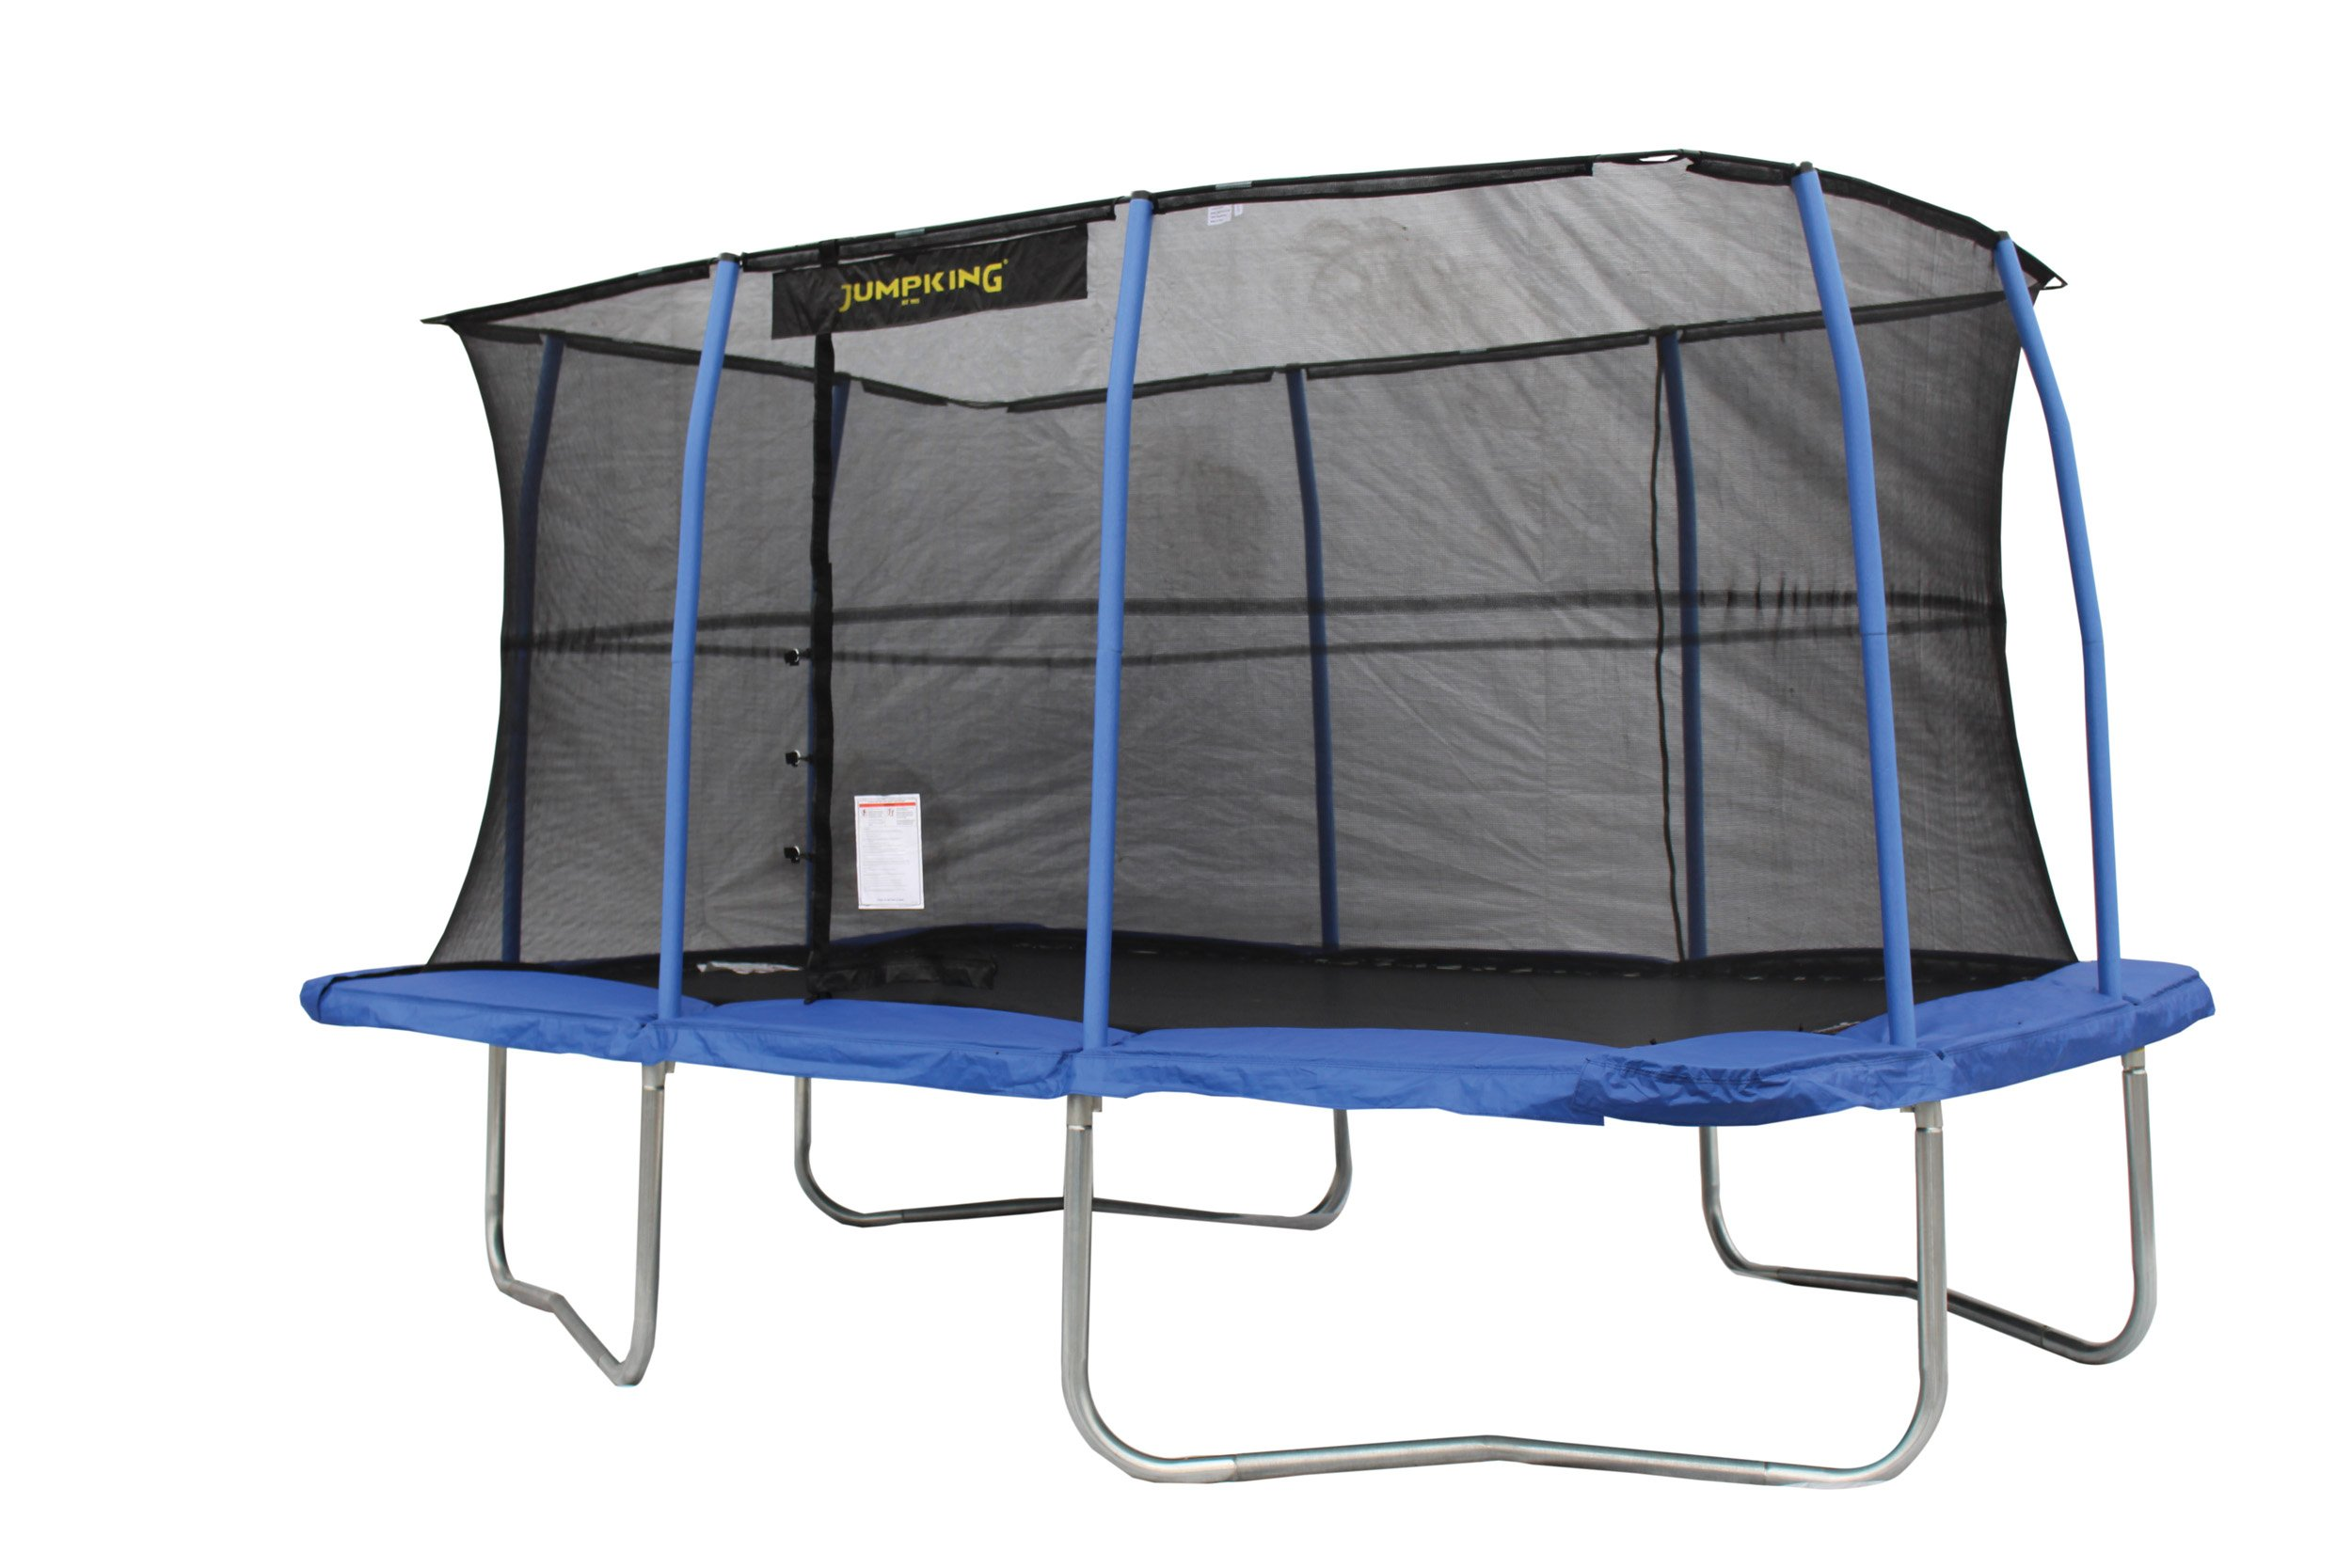 JumpKing 10 x 14 Foot Rectangular Trampoline with Safety Net Enclosure, Blue by JumpKing